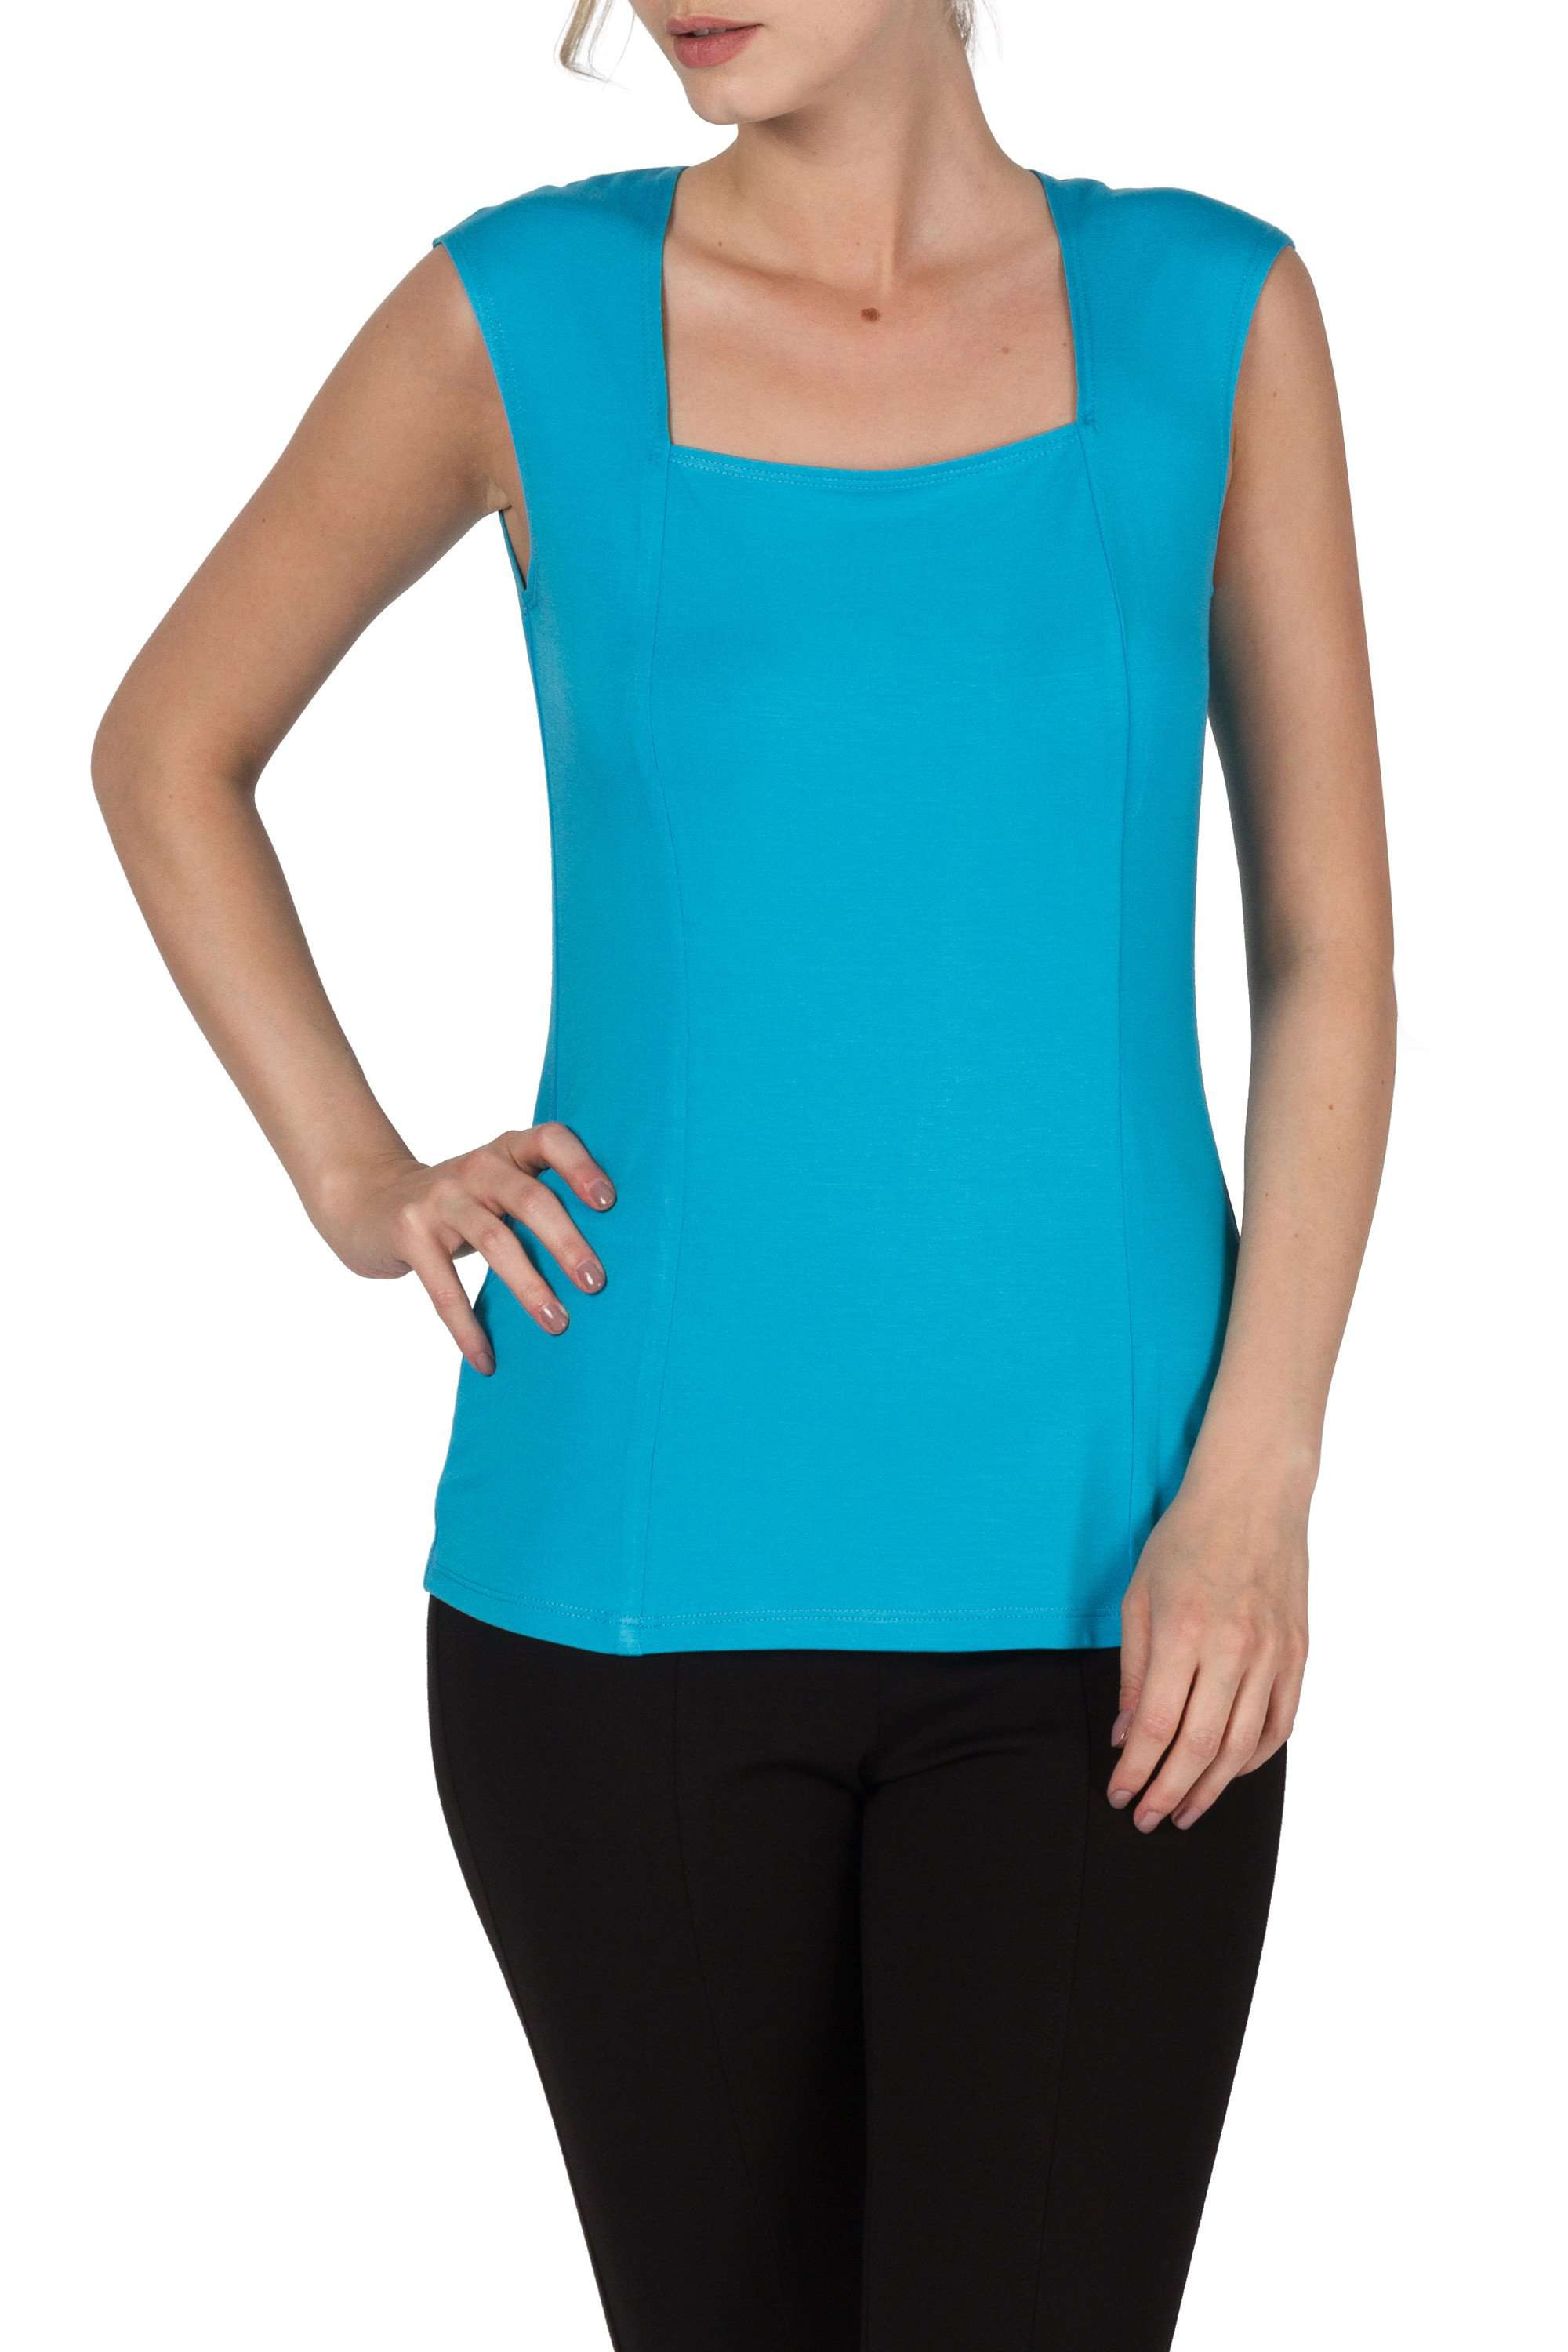 Camisole Turquoise Square Neckline Design-Perfect For Layering and Travel - Yvonne Marie